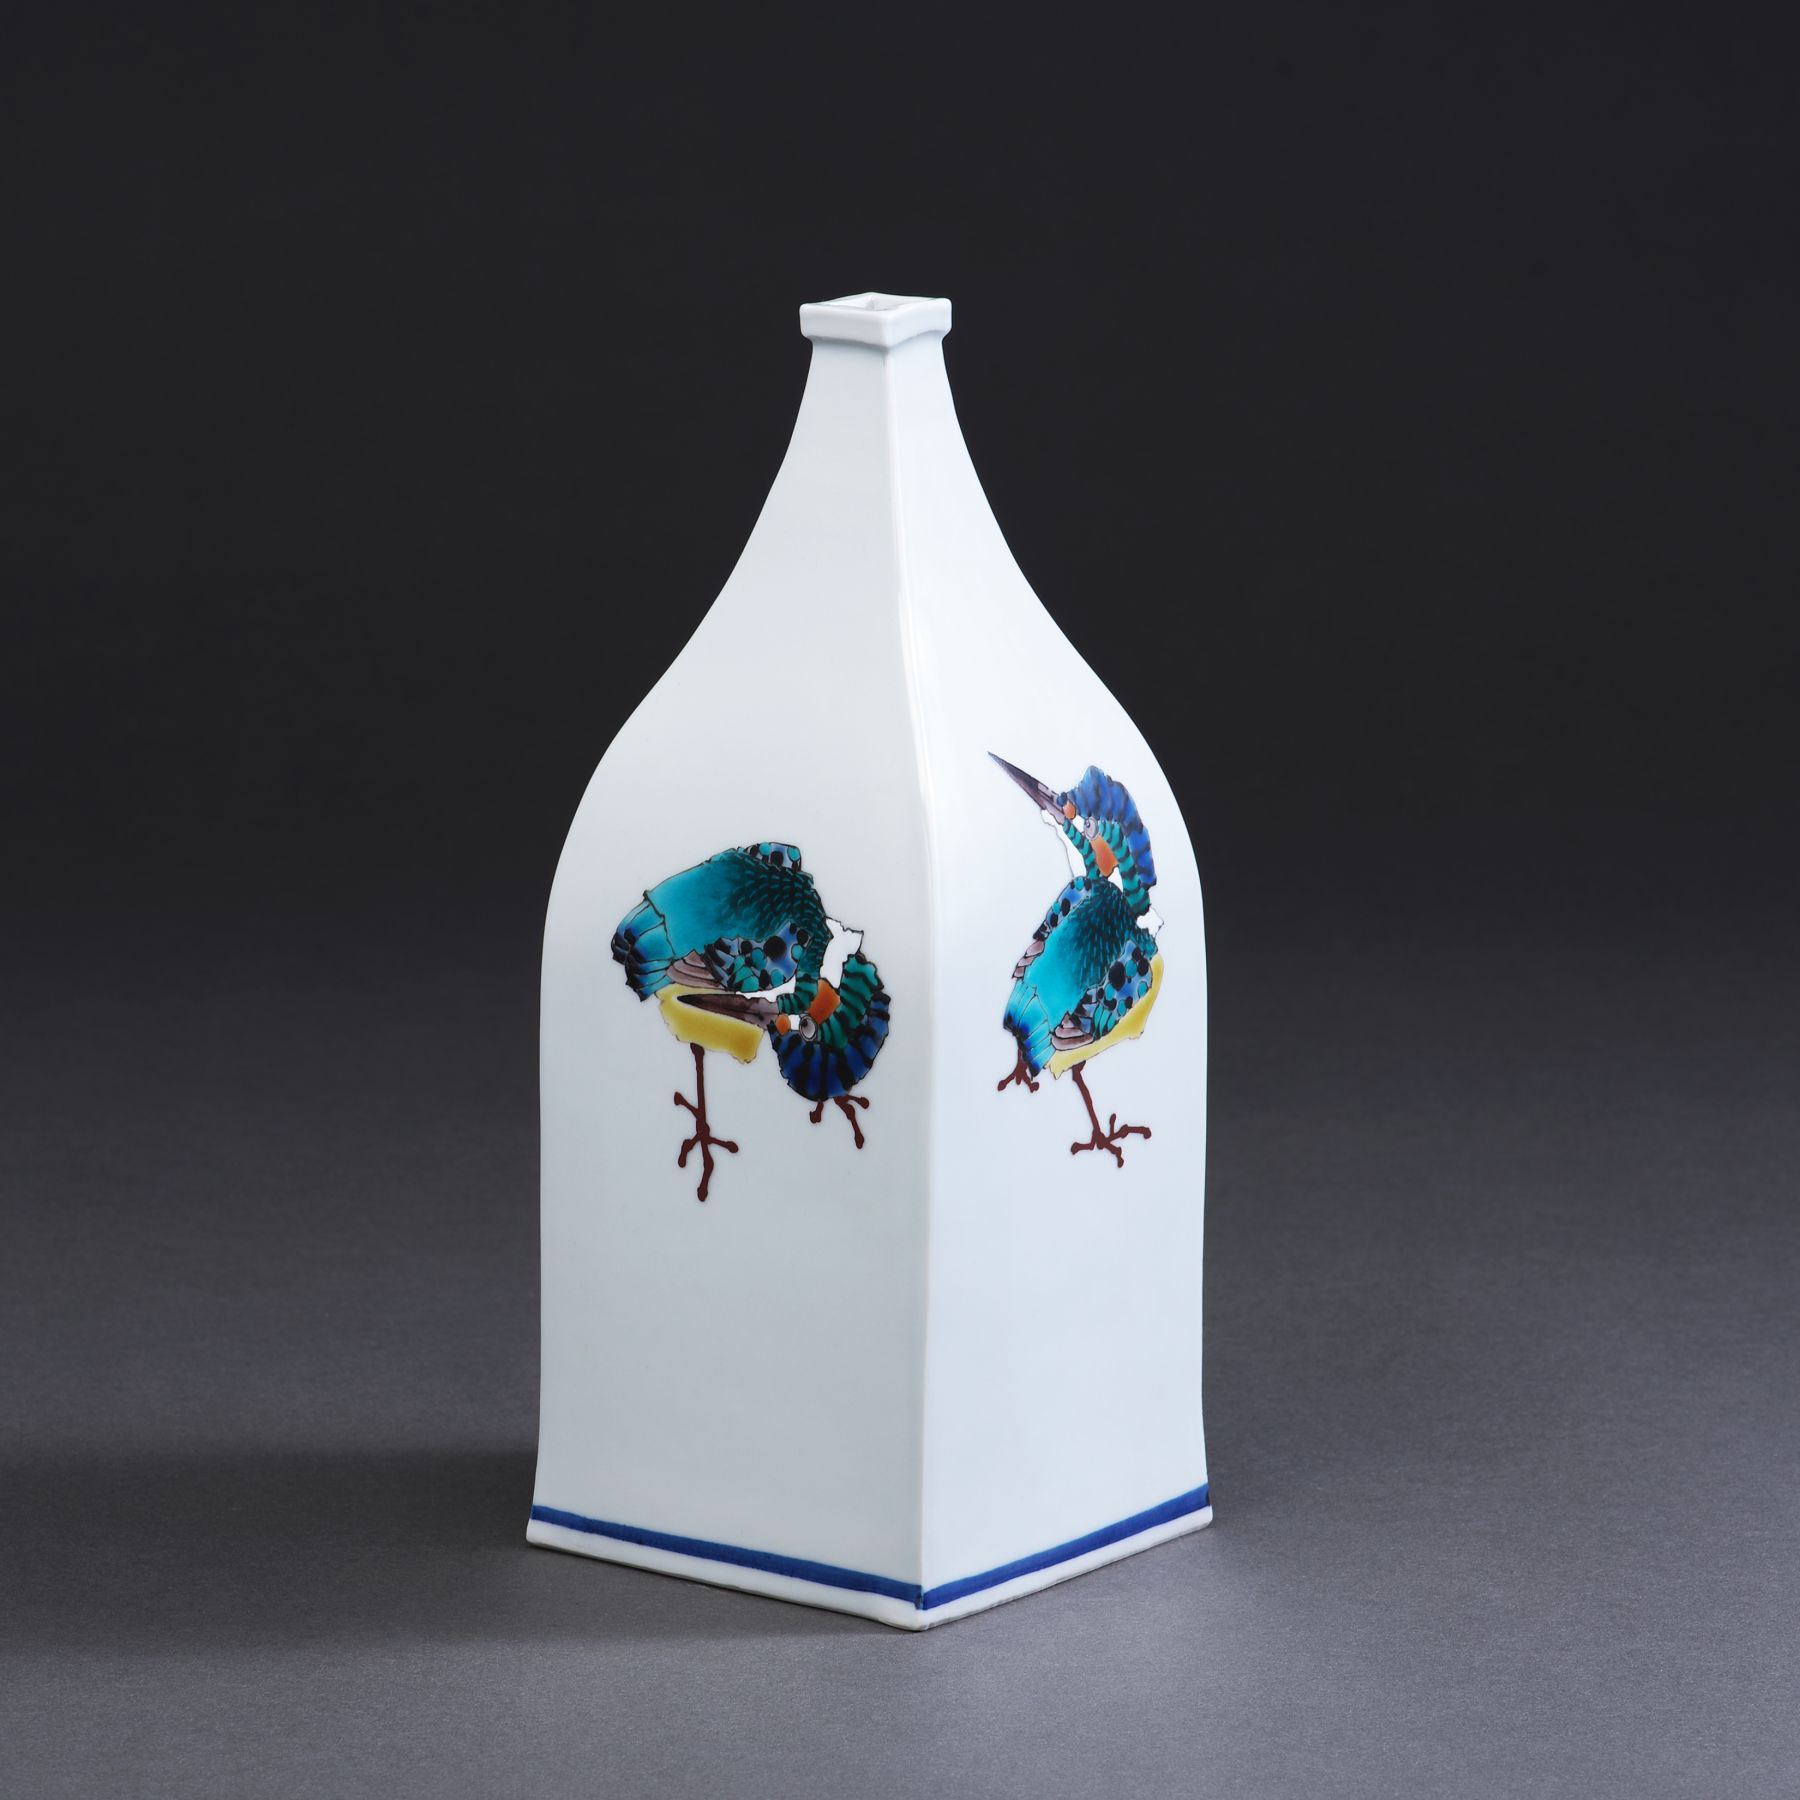 Square bottle with raised mouth decorated with caricature of kingfishers, 2017